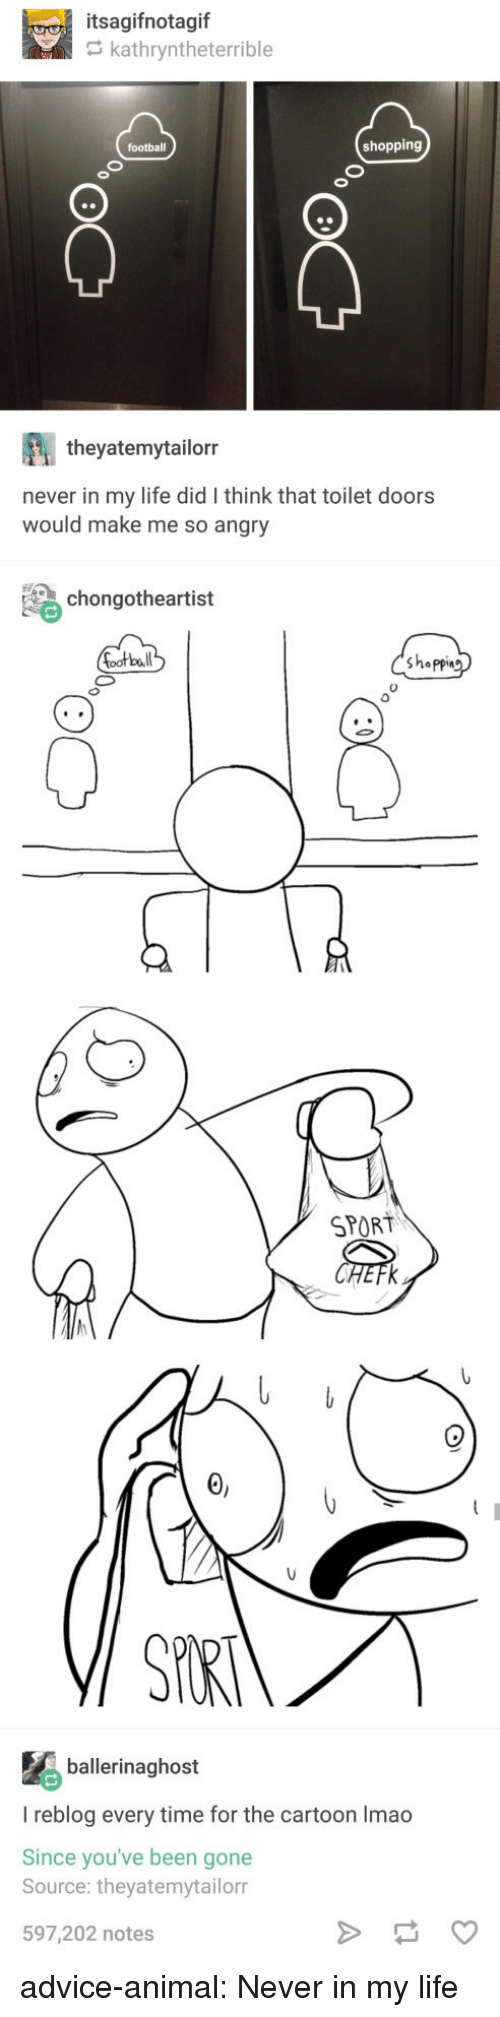 So Angry: itsagifnotagif  kathryntheterrible  shopping  theyatemytailorr  never in my life did I think that toilet doors  would make me so angry  chongotheartist  bal  shappin  0  SPORT  ballerinaghost  I reblog every time for the cartoon Imao  Since you've been gone  Source: theyatemytailorr  597,202 notes advice-animal:  Never in my life